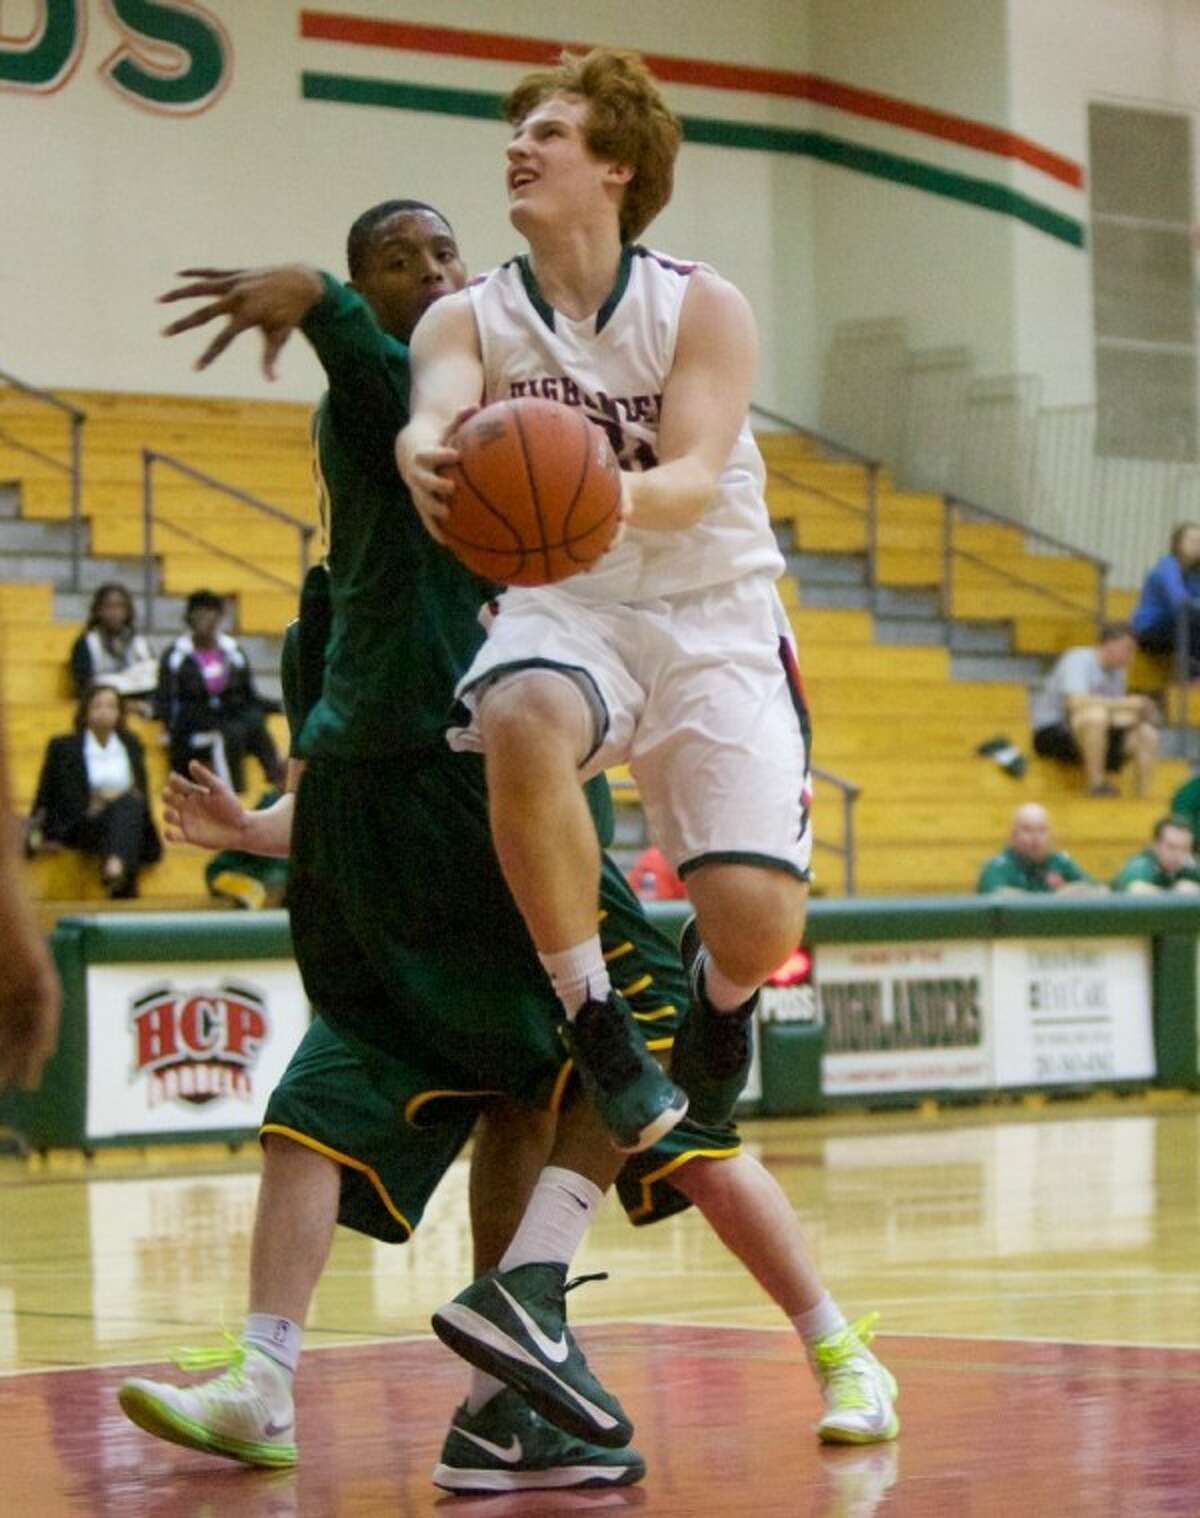 The Woodlands' Zach Manning goes up for a basket during Friday night's non-district game at The Woodlands High School.